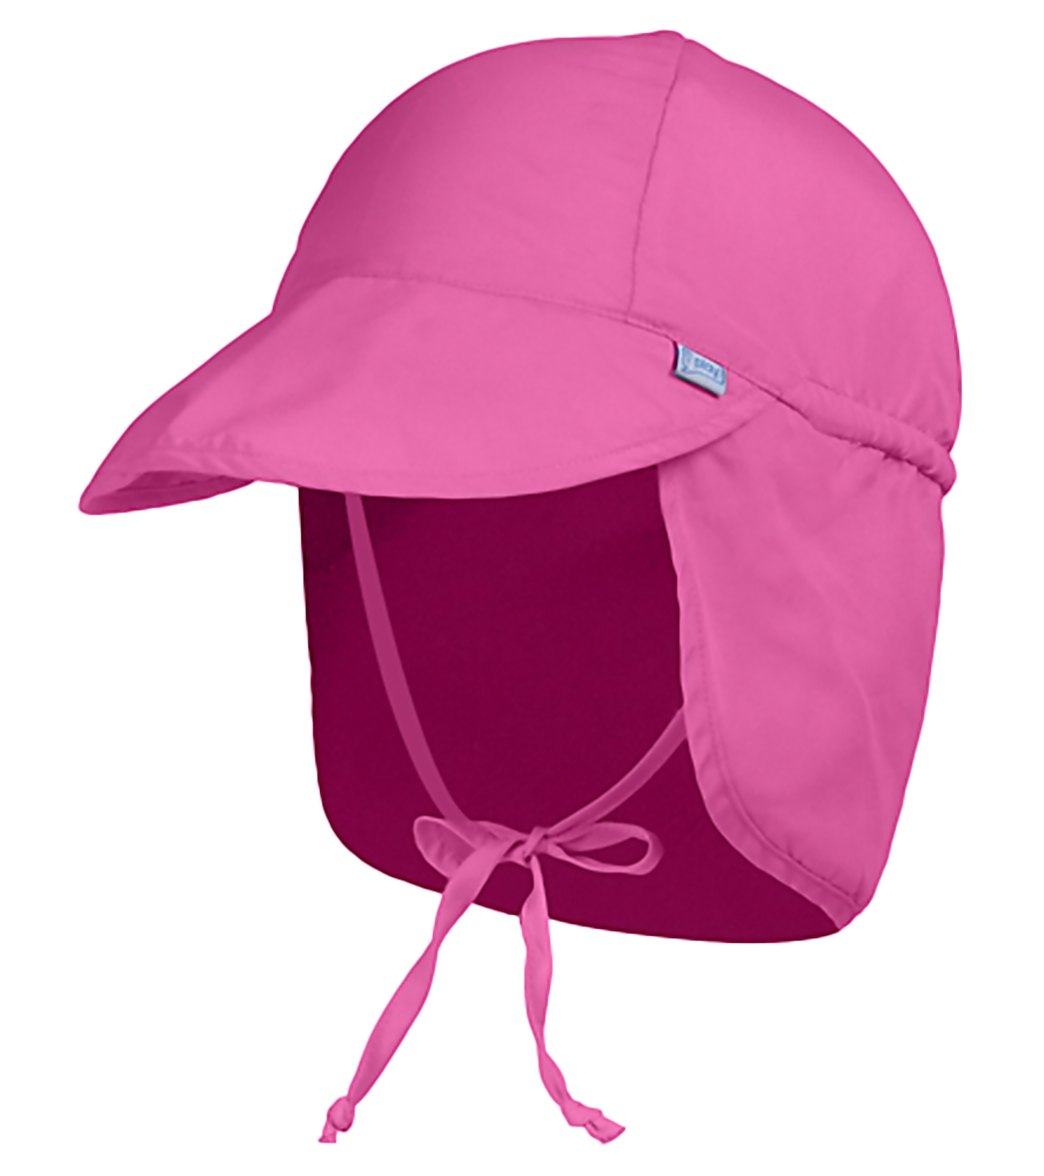 iPlay Solid Flap Sun Protection Hat (3mos-4yrs) at SwimOutlet.com a44170614fb